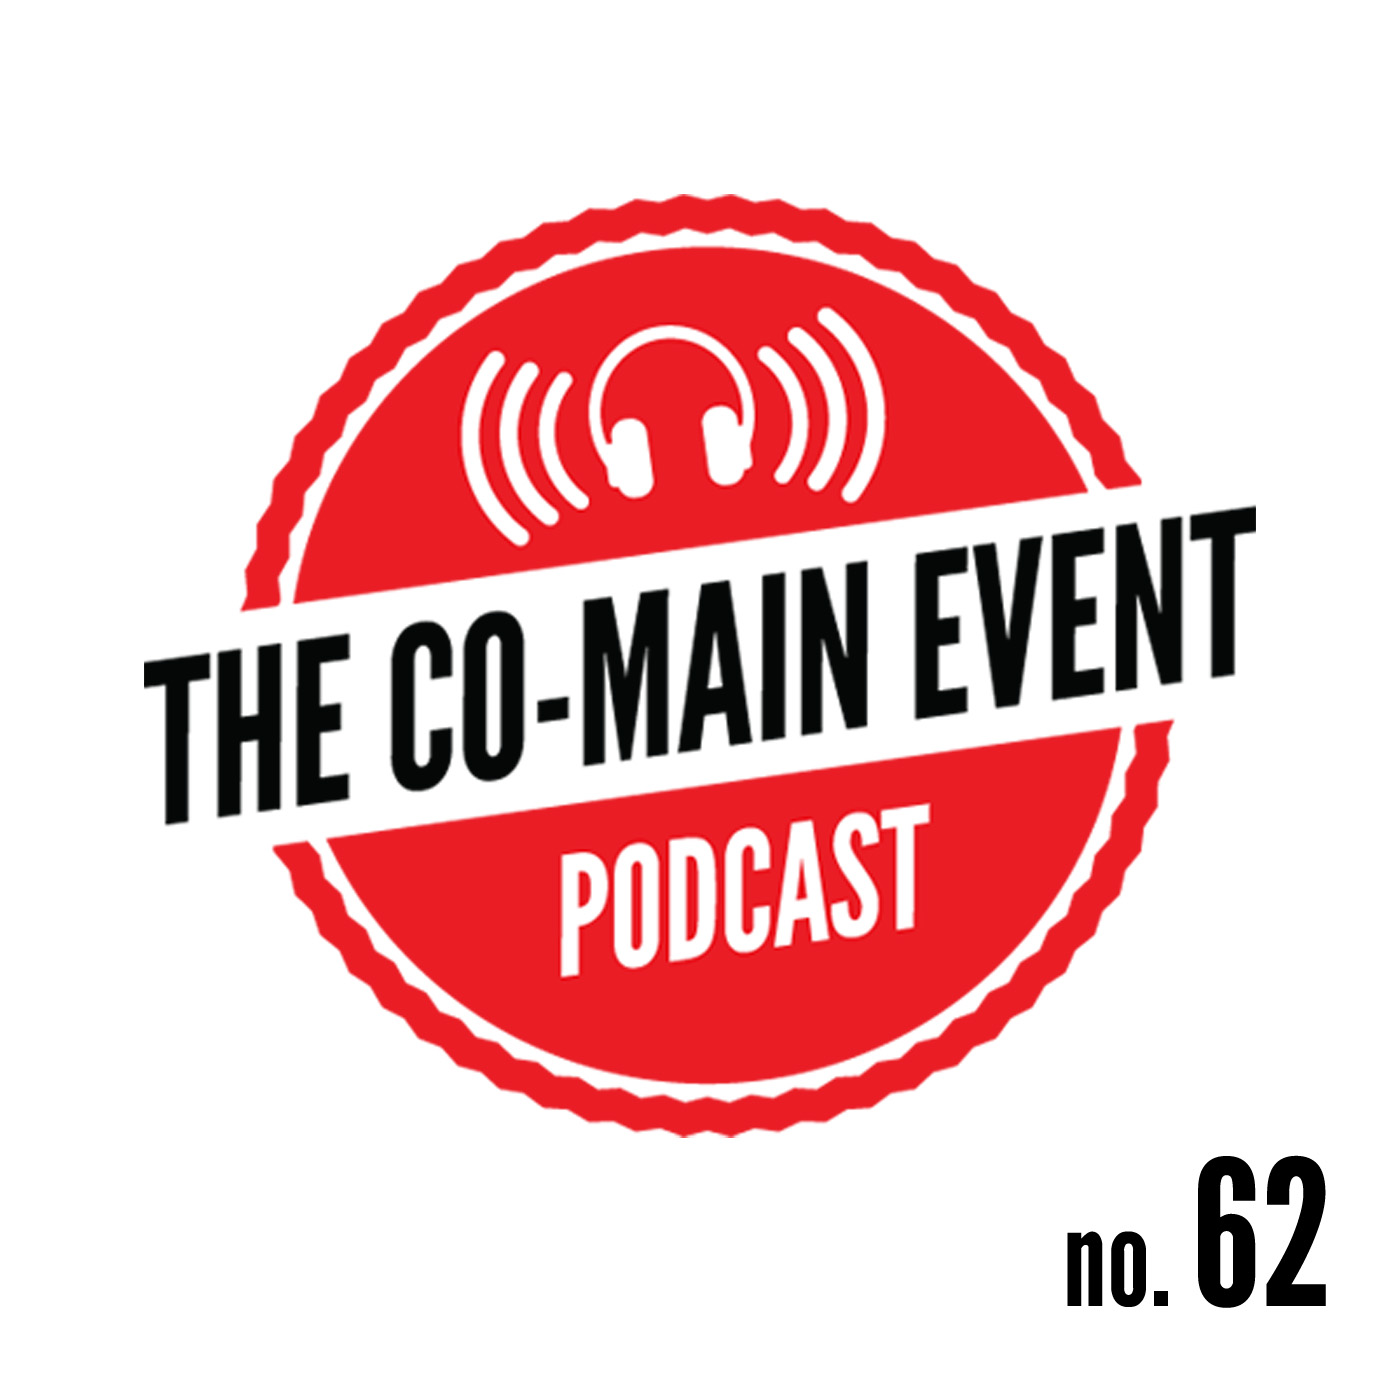 Co-Main Event Podcast Episode 62 (7/30/13)